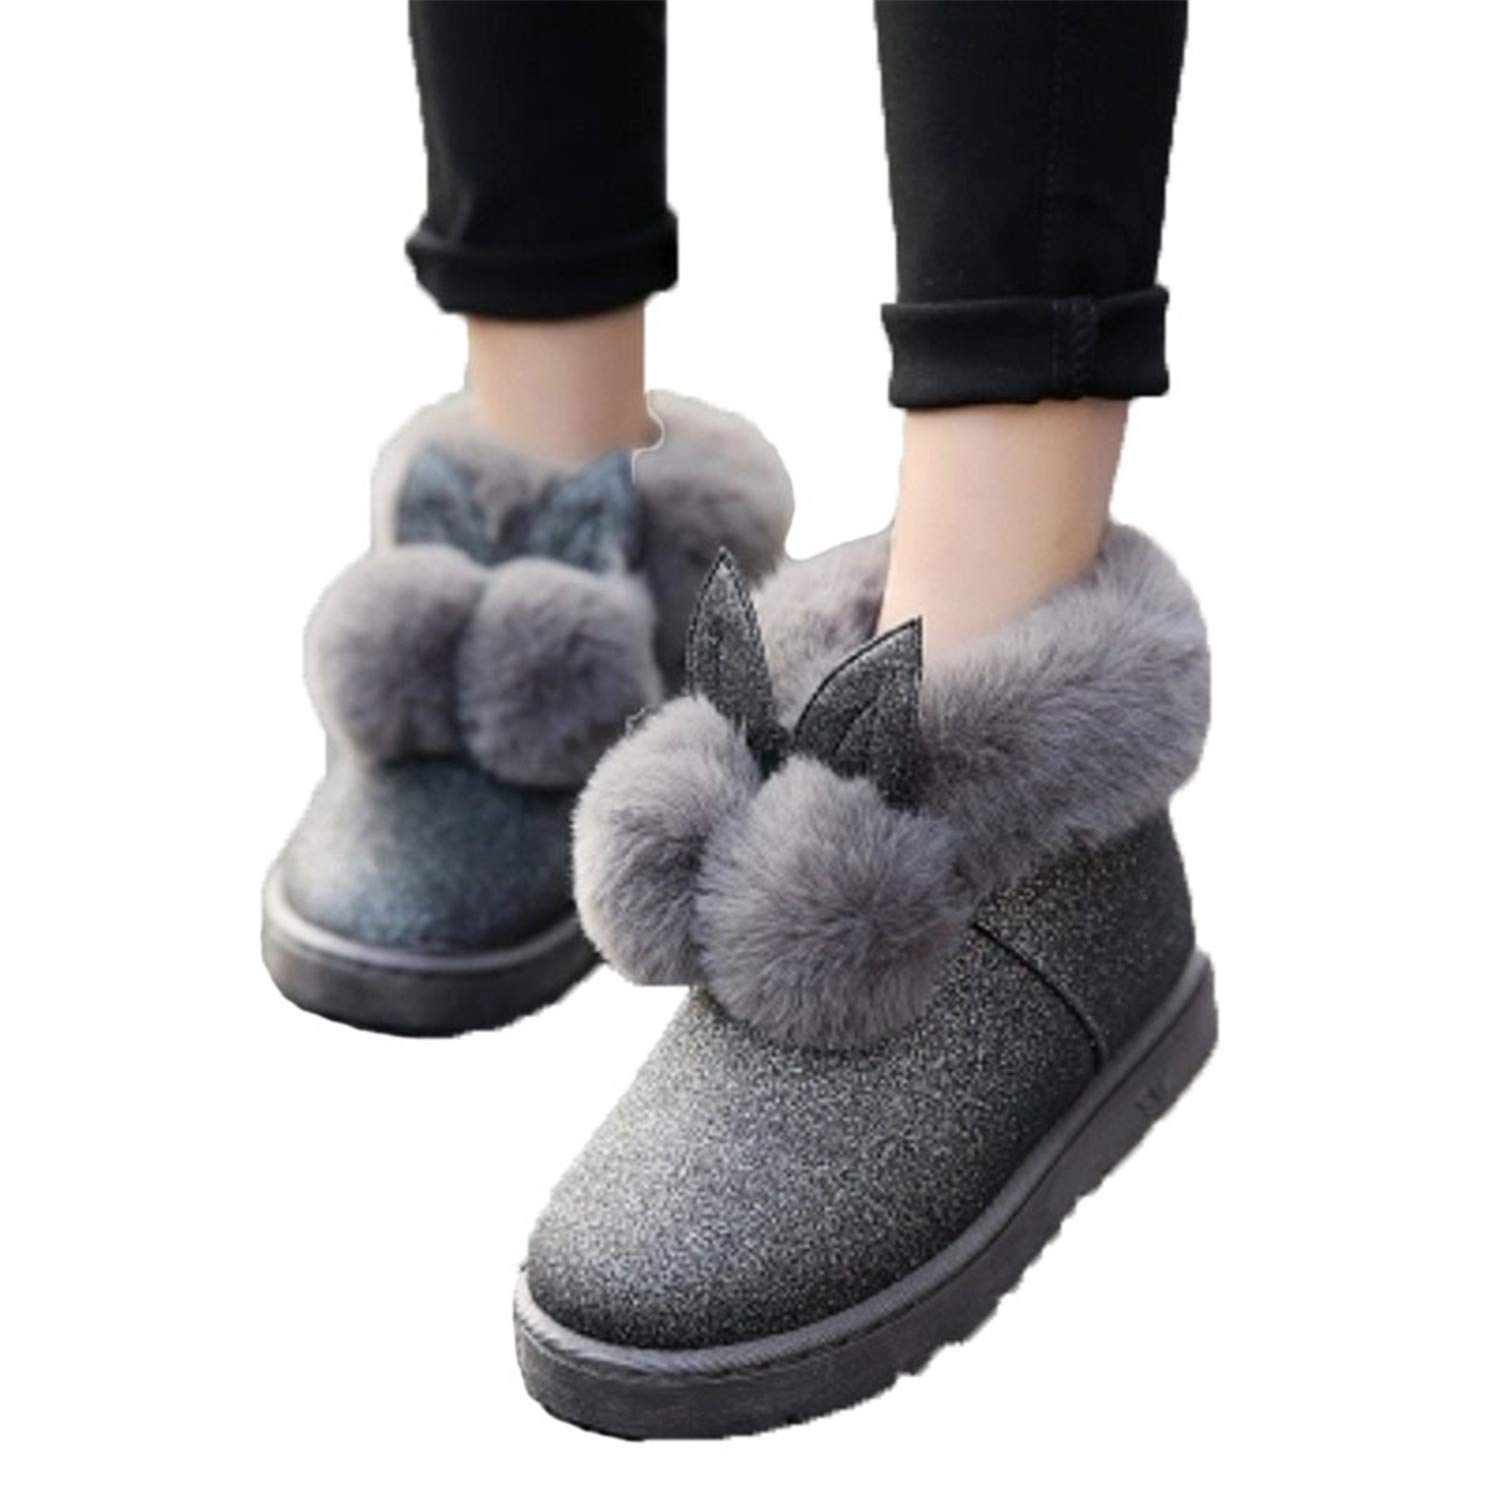 DATAIYANG Women Boots Rabbit Ears Cute Boots Waterproof and Velvet Thick Warm Cotton Shoes.